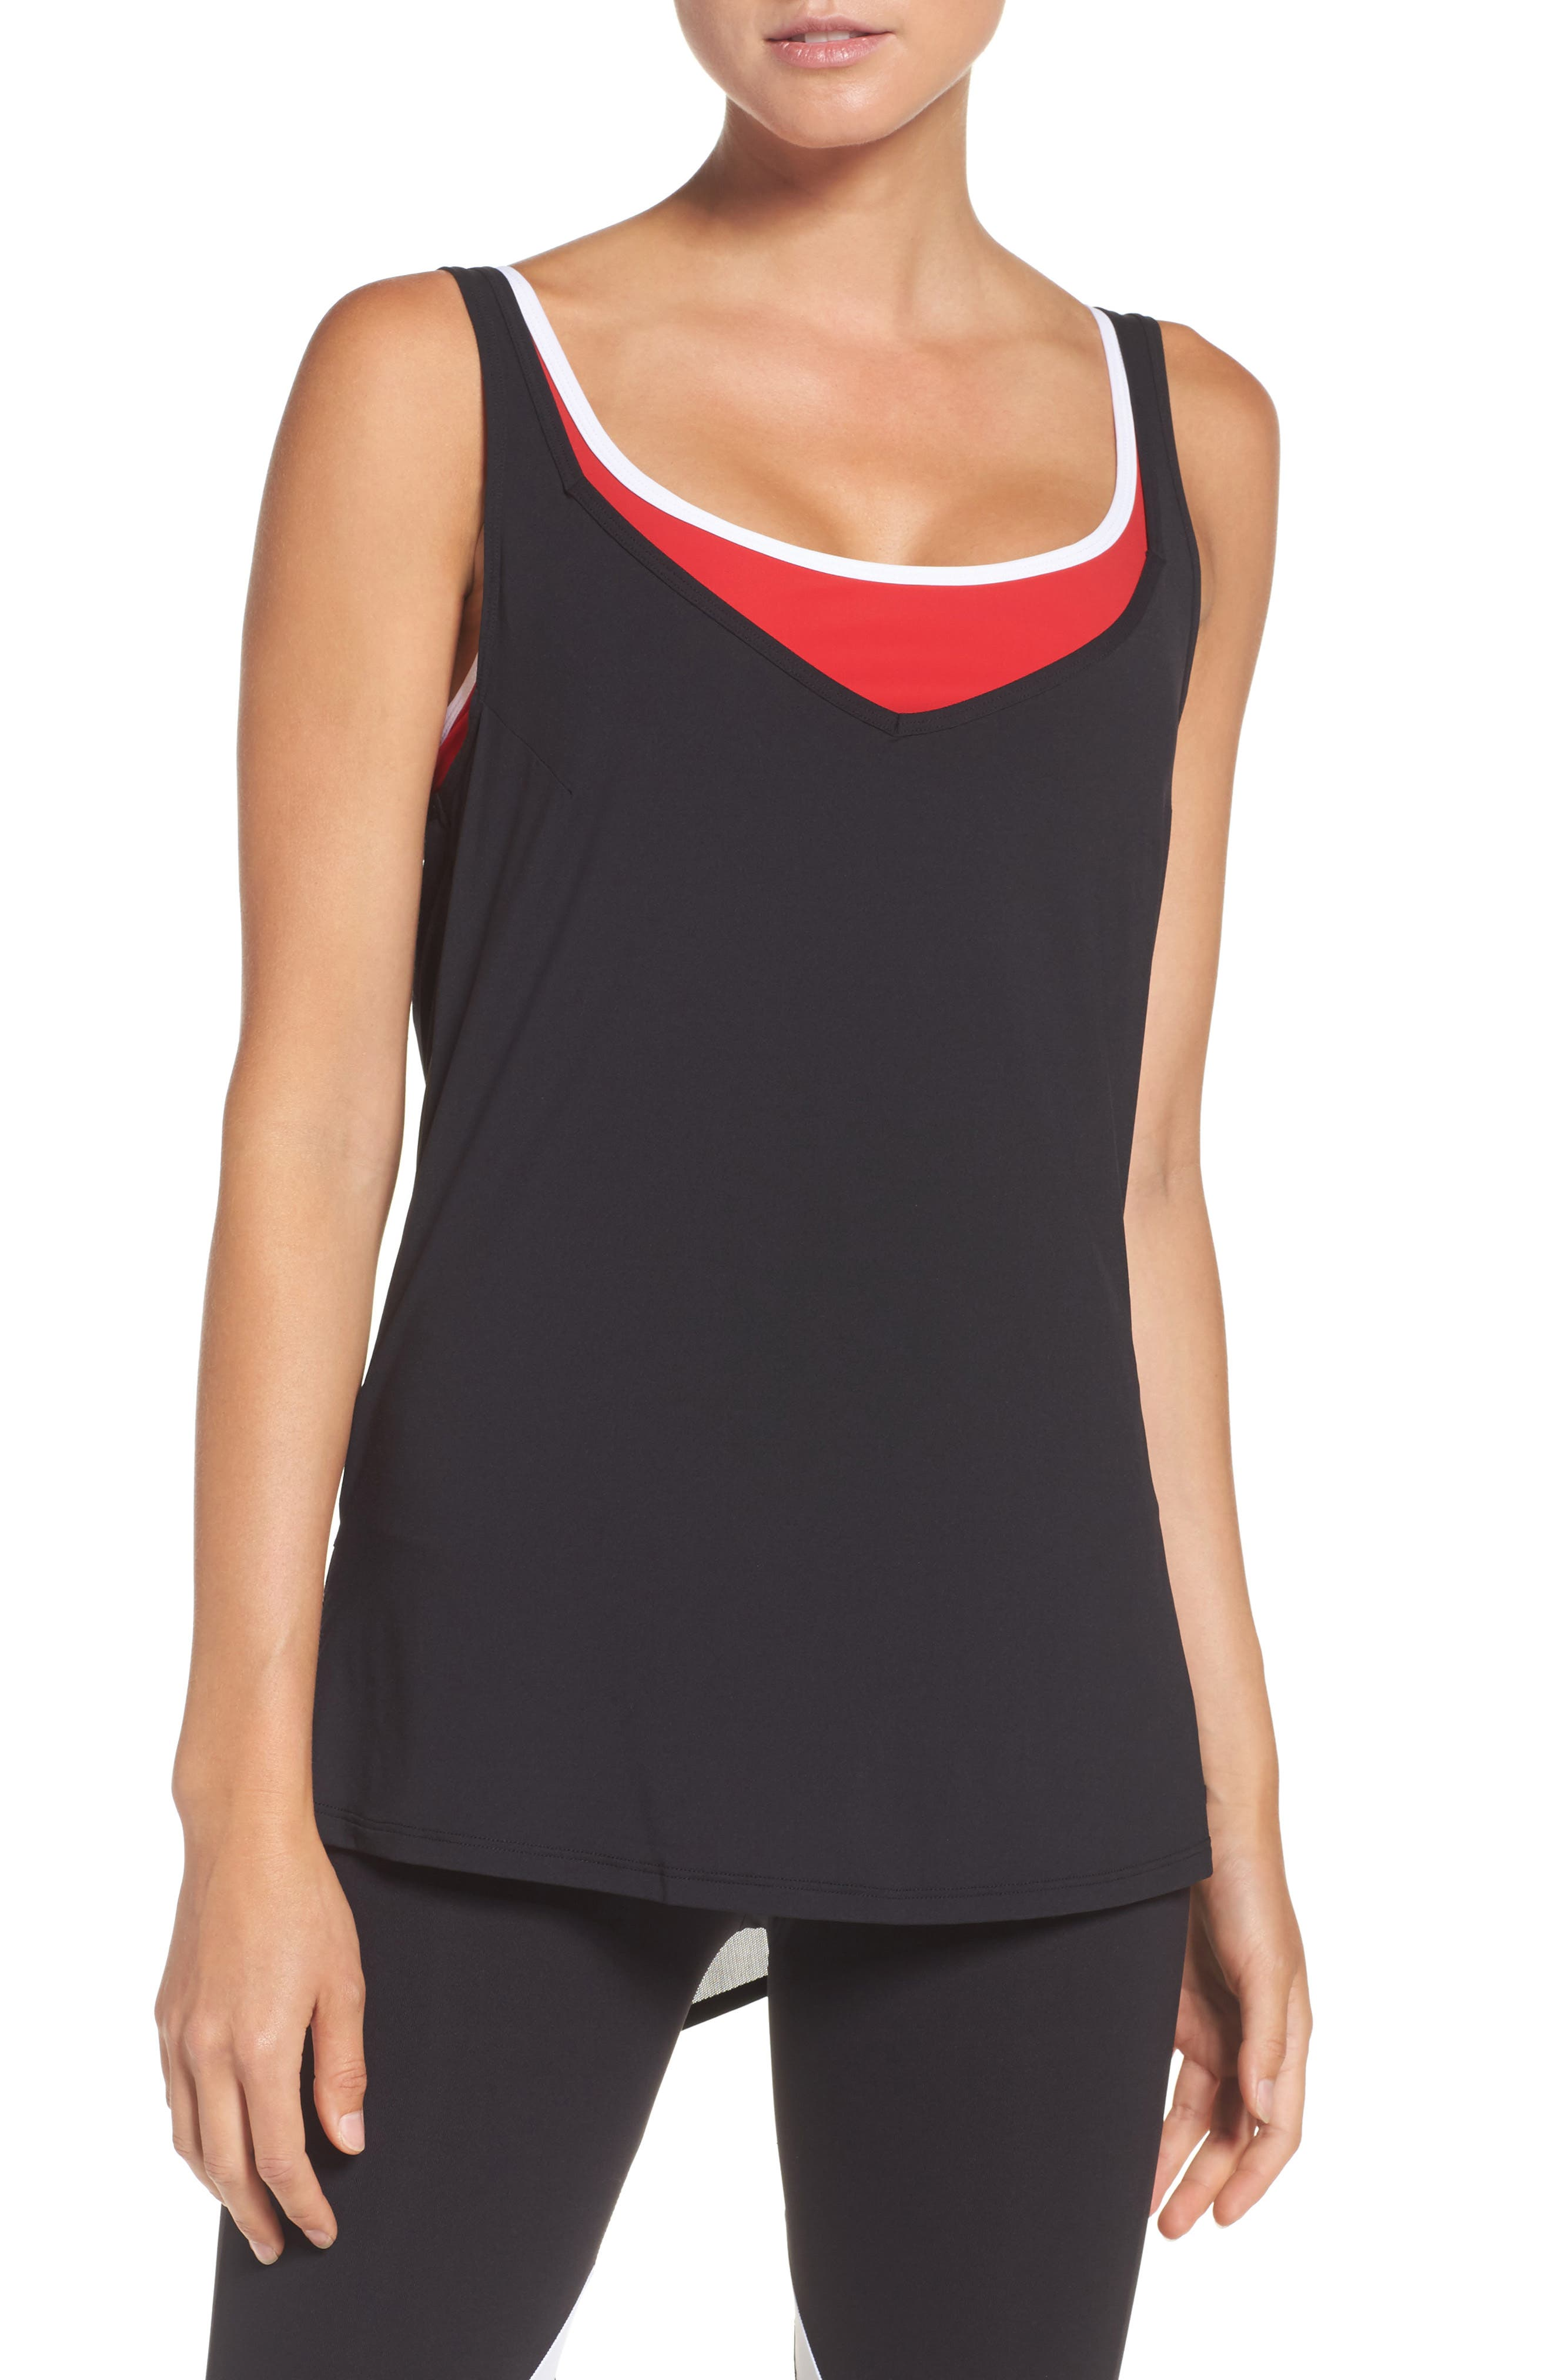 BoomBoom Athletica 2-in-1 Tank,                             Main thumbnail 1, color,                             001